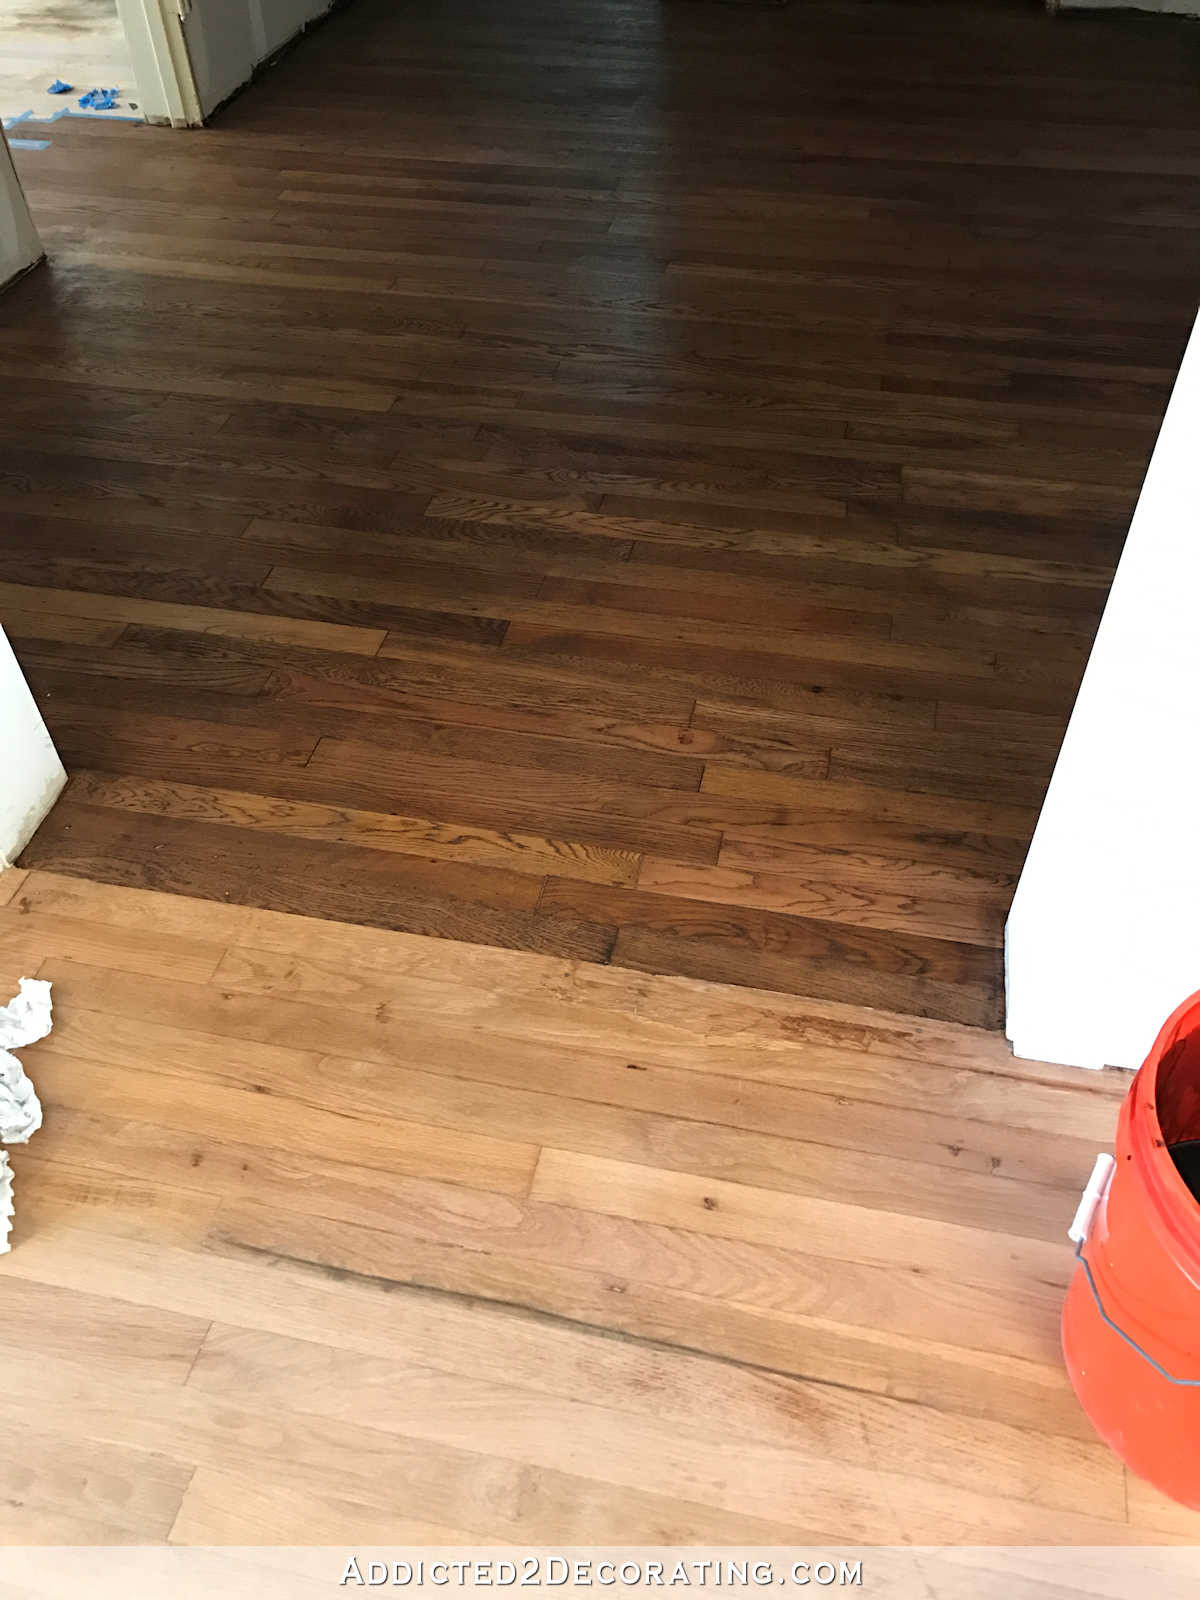 restaining hardwood floors diy of adventures in staining my red oak hardwood floors products process within staining red oak hardwood floors 2 tape off one section at a time for